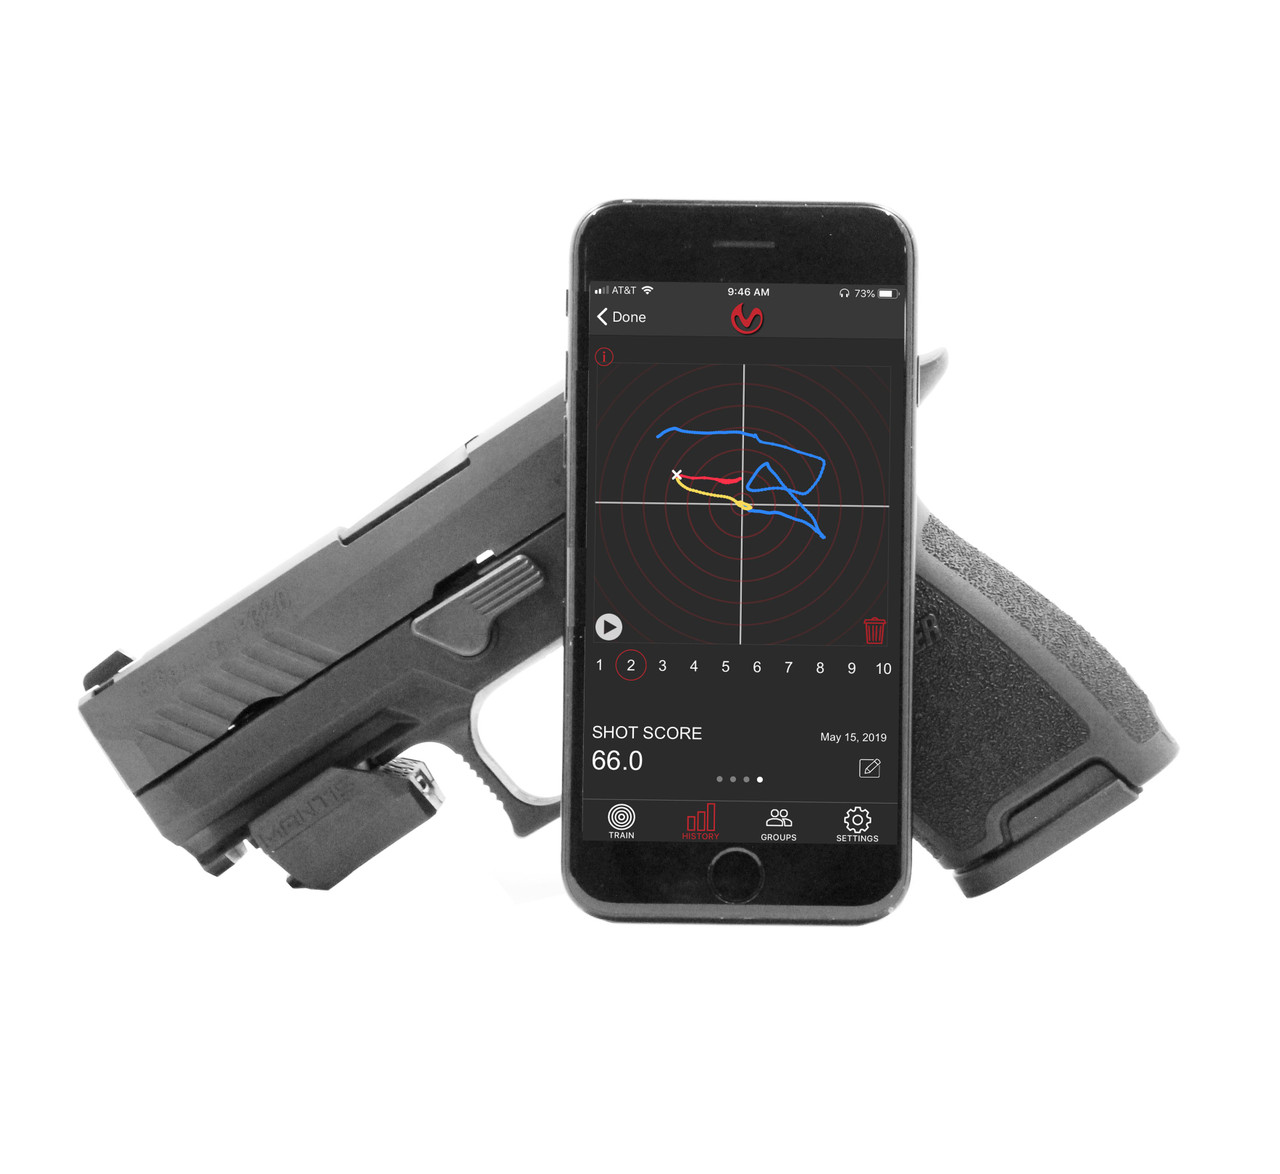 MANTIS X2 - DRY FIRE SHOOTING PERFORMANCE SYSTEM